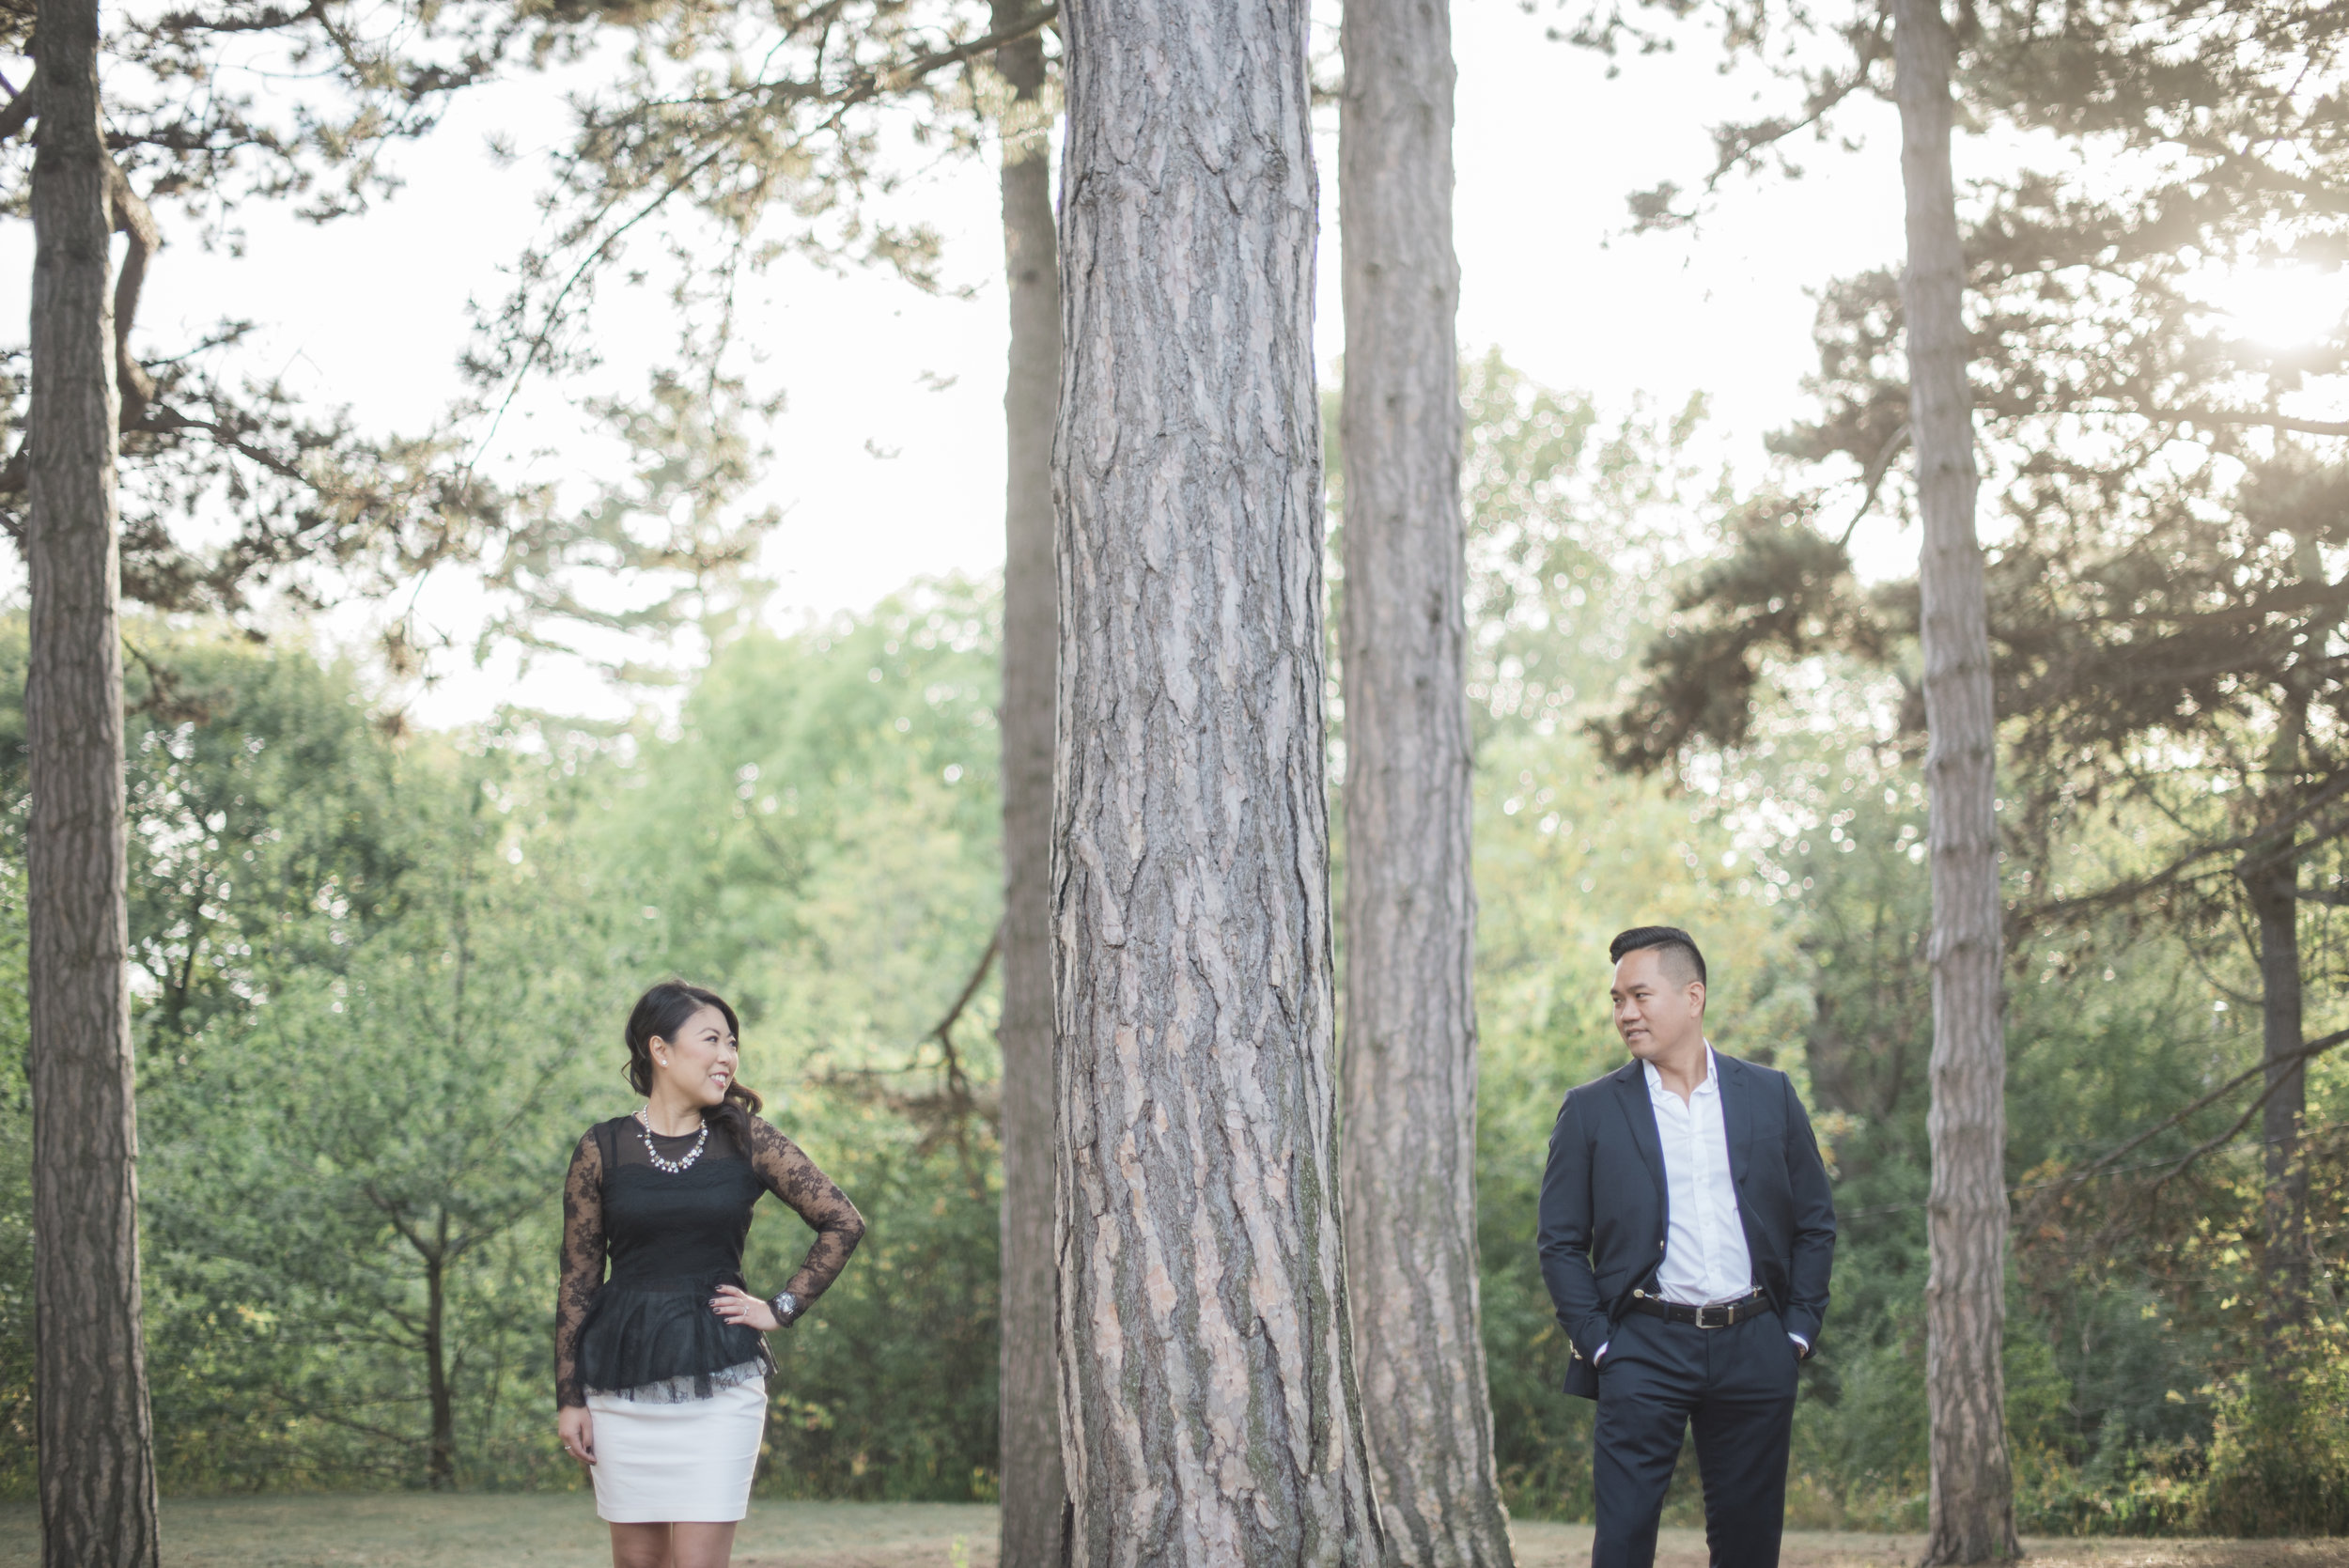 JM_engagement-79.jpg